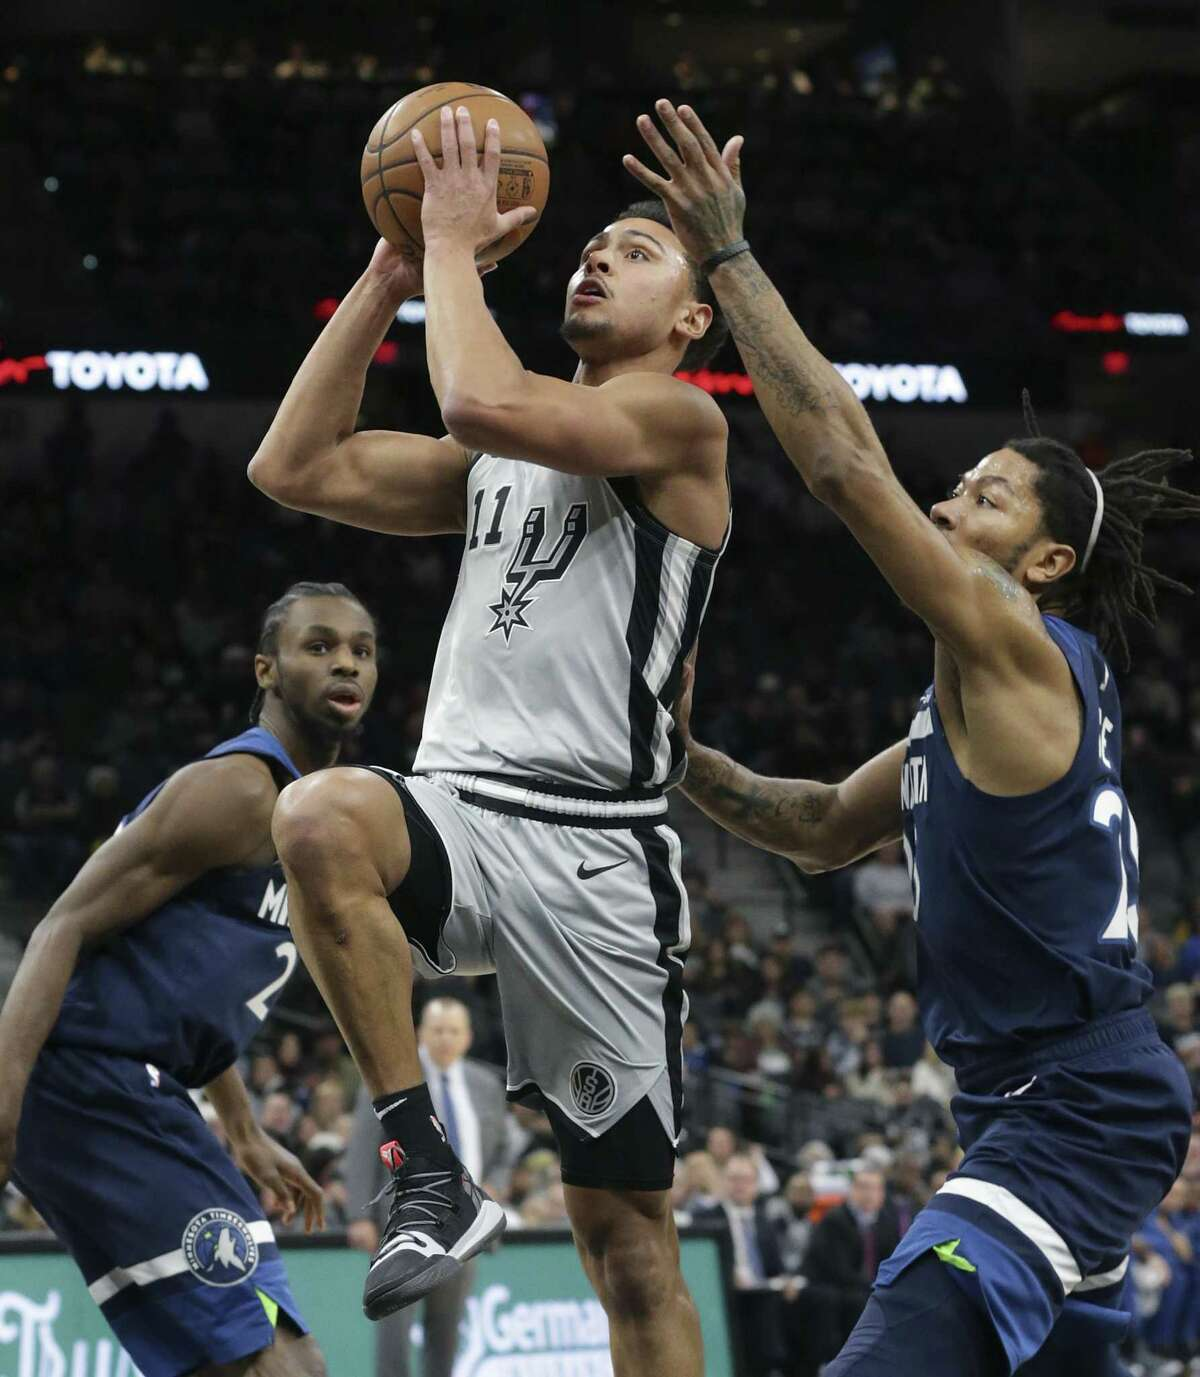 Bryn Forbes slips by Wolves defenders Andrew Wiggins, left, and Derrick Rose to get to the hoop as the Spurs host the Timberwolves at the AT&T Center on December 21, 2018.